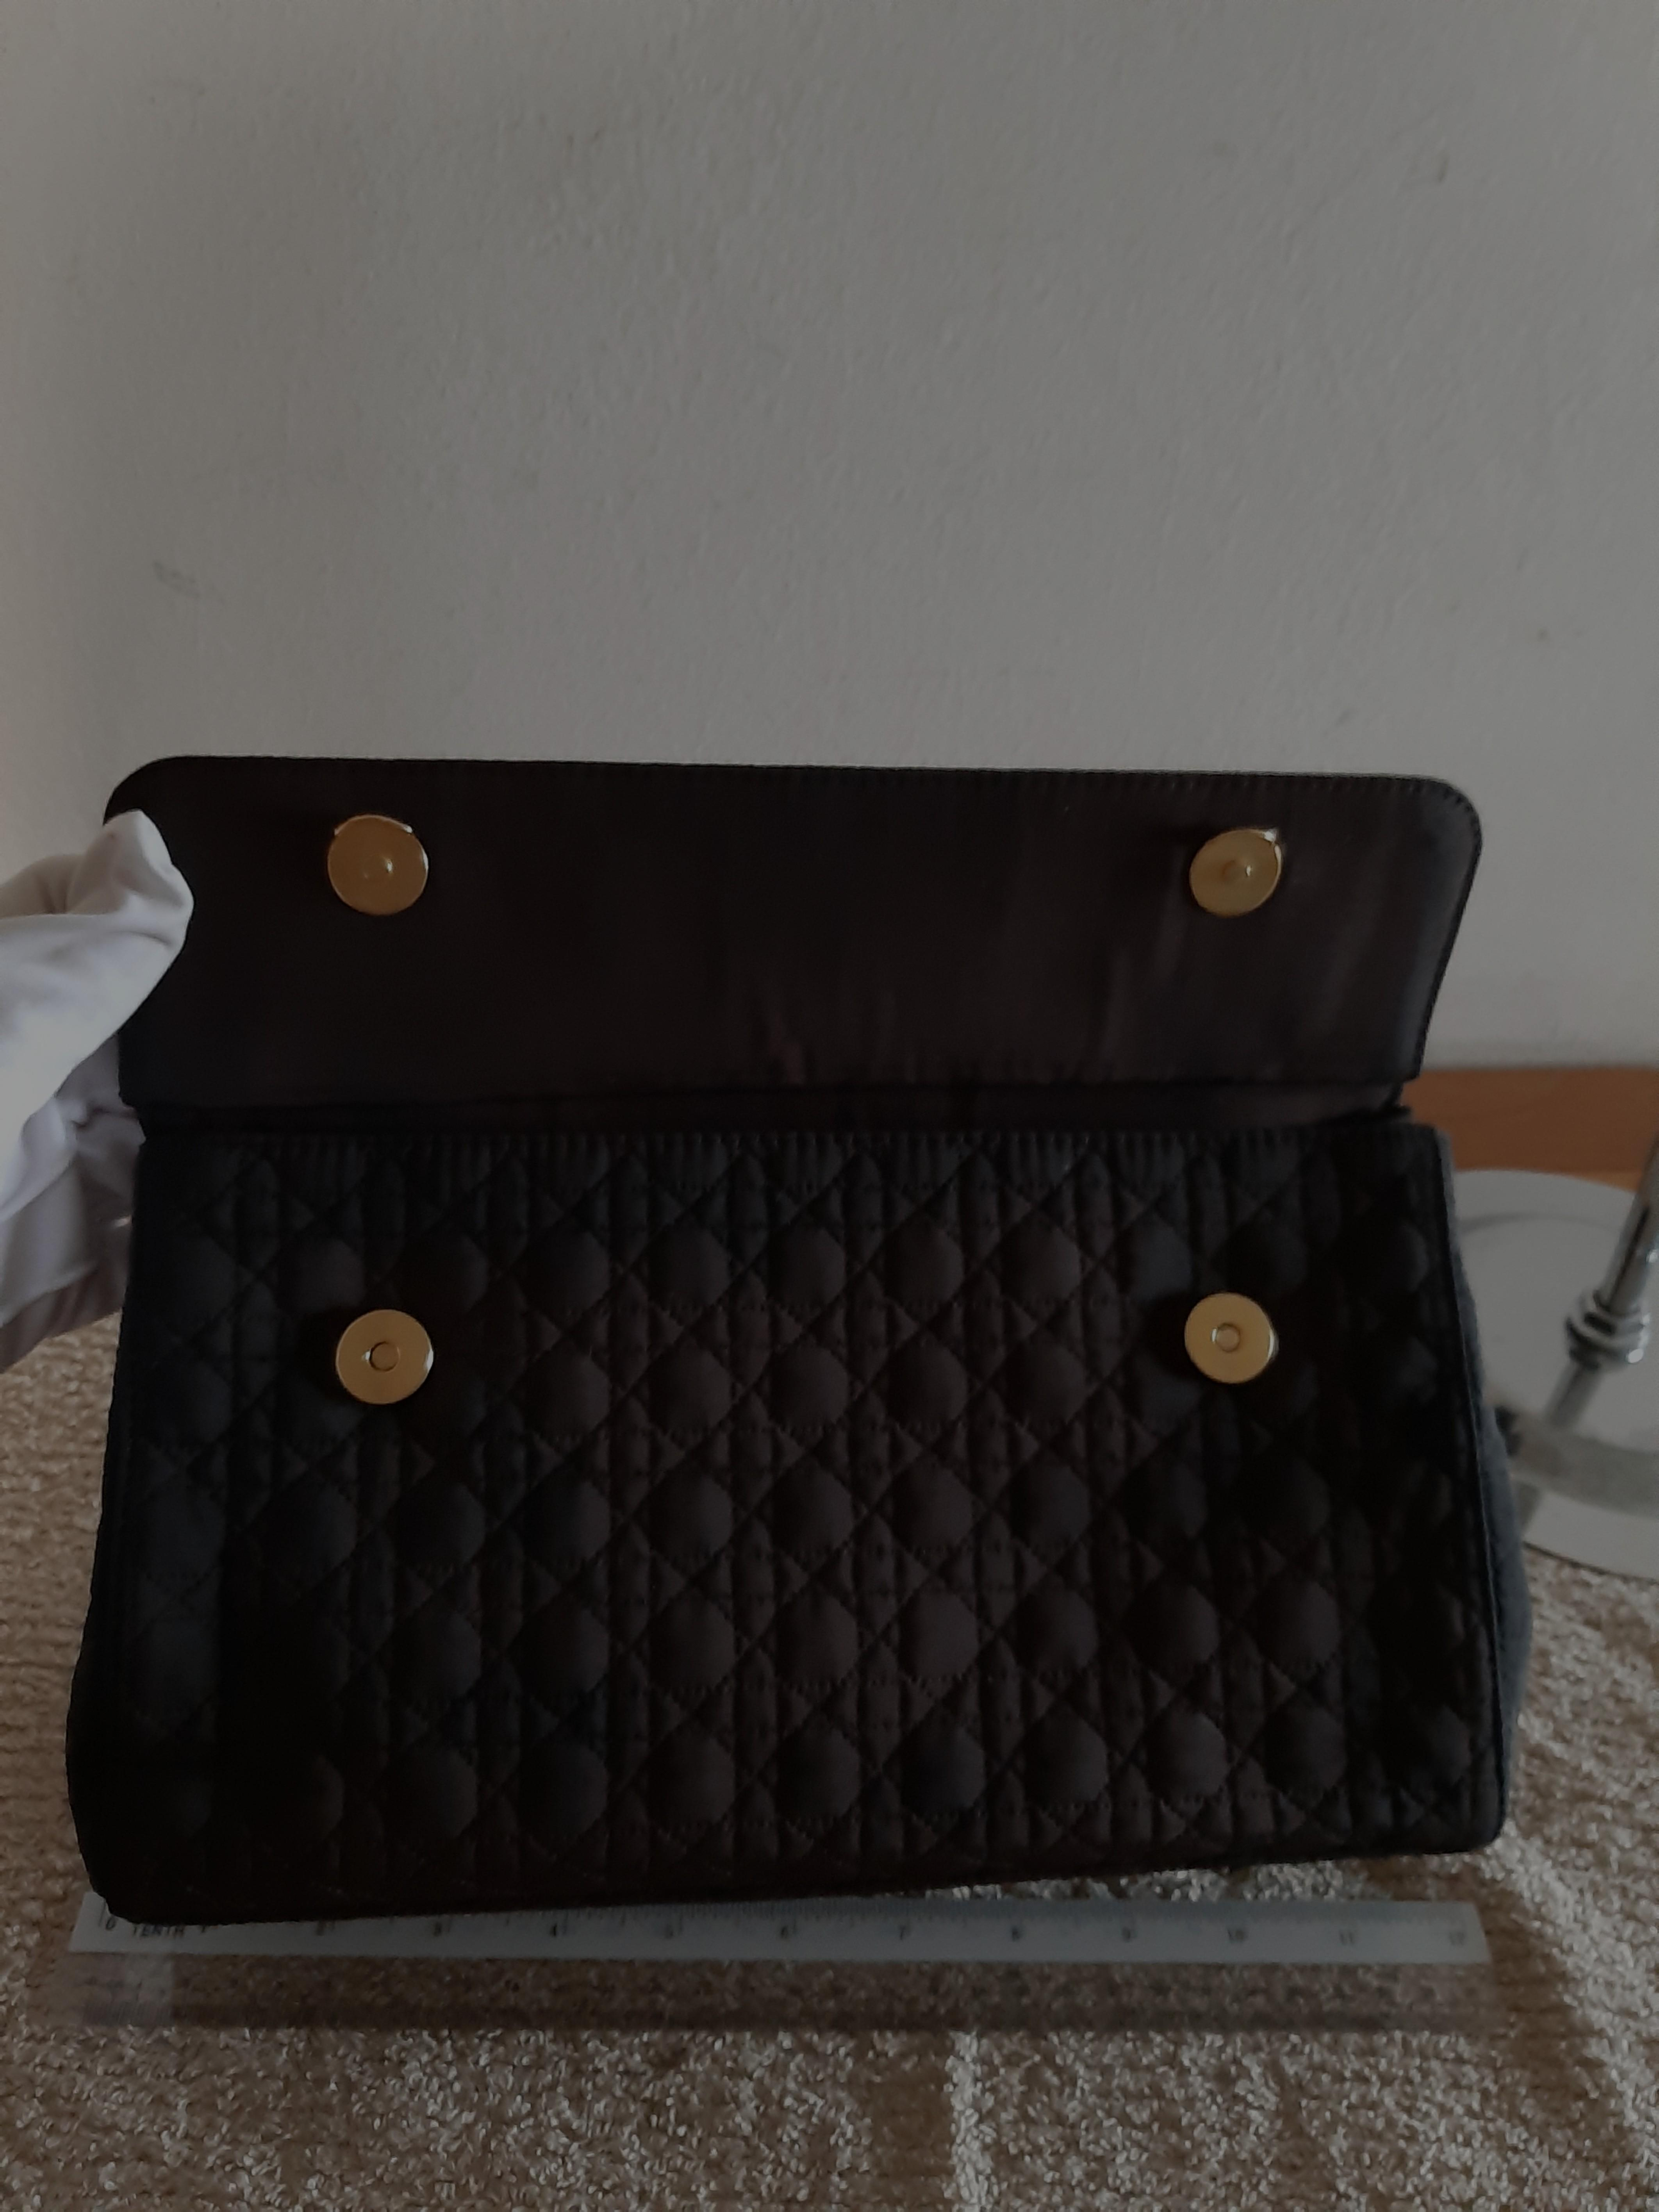 AUTHENTIC DIOR,  LADY DIOR FLAP BAG - BLACK SUEDE MICROFIBER- CLEAN INTERIOR,  SOLID SHAPE STRUCTURE- (LADY DIOR BAGS NOW RETAIL OVER RM 15,000+) -